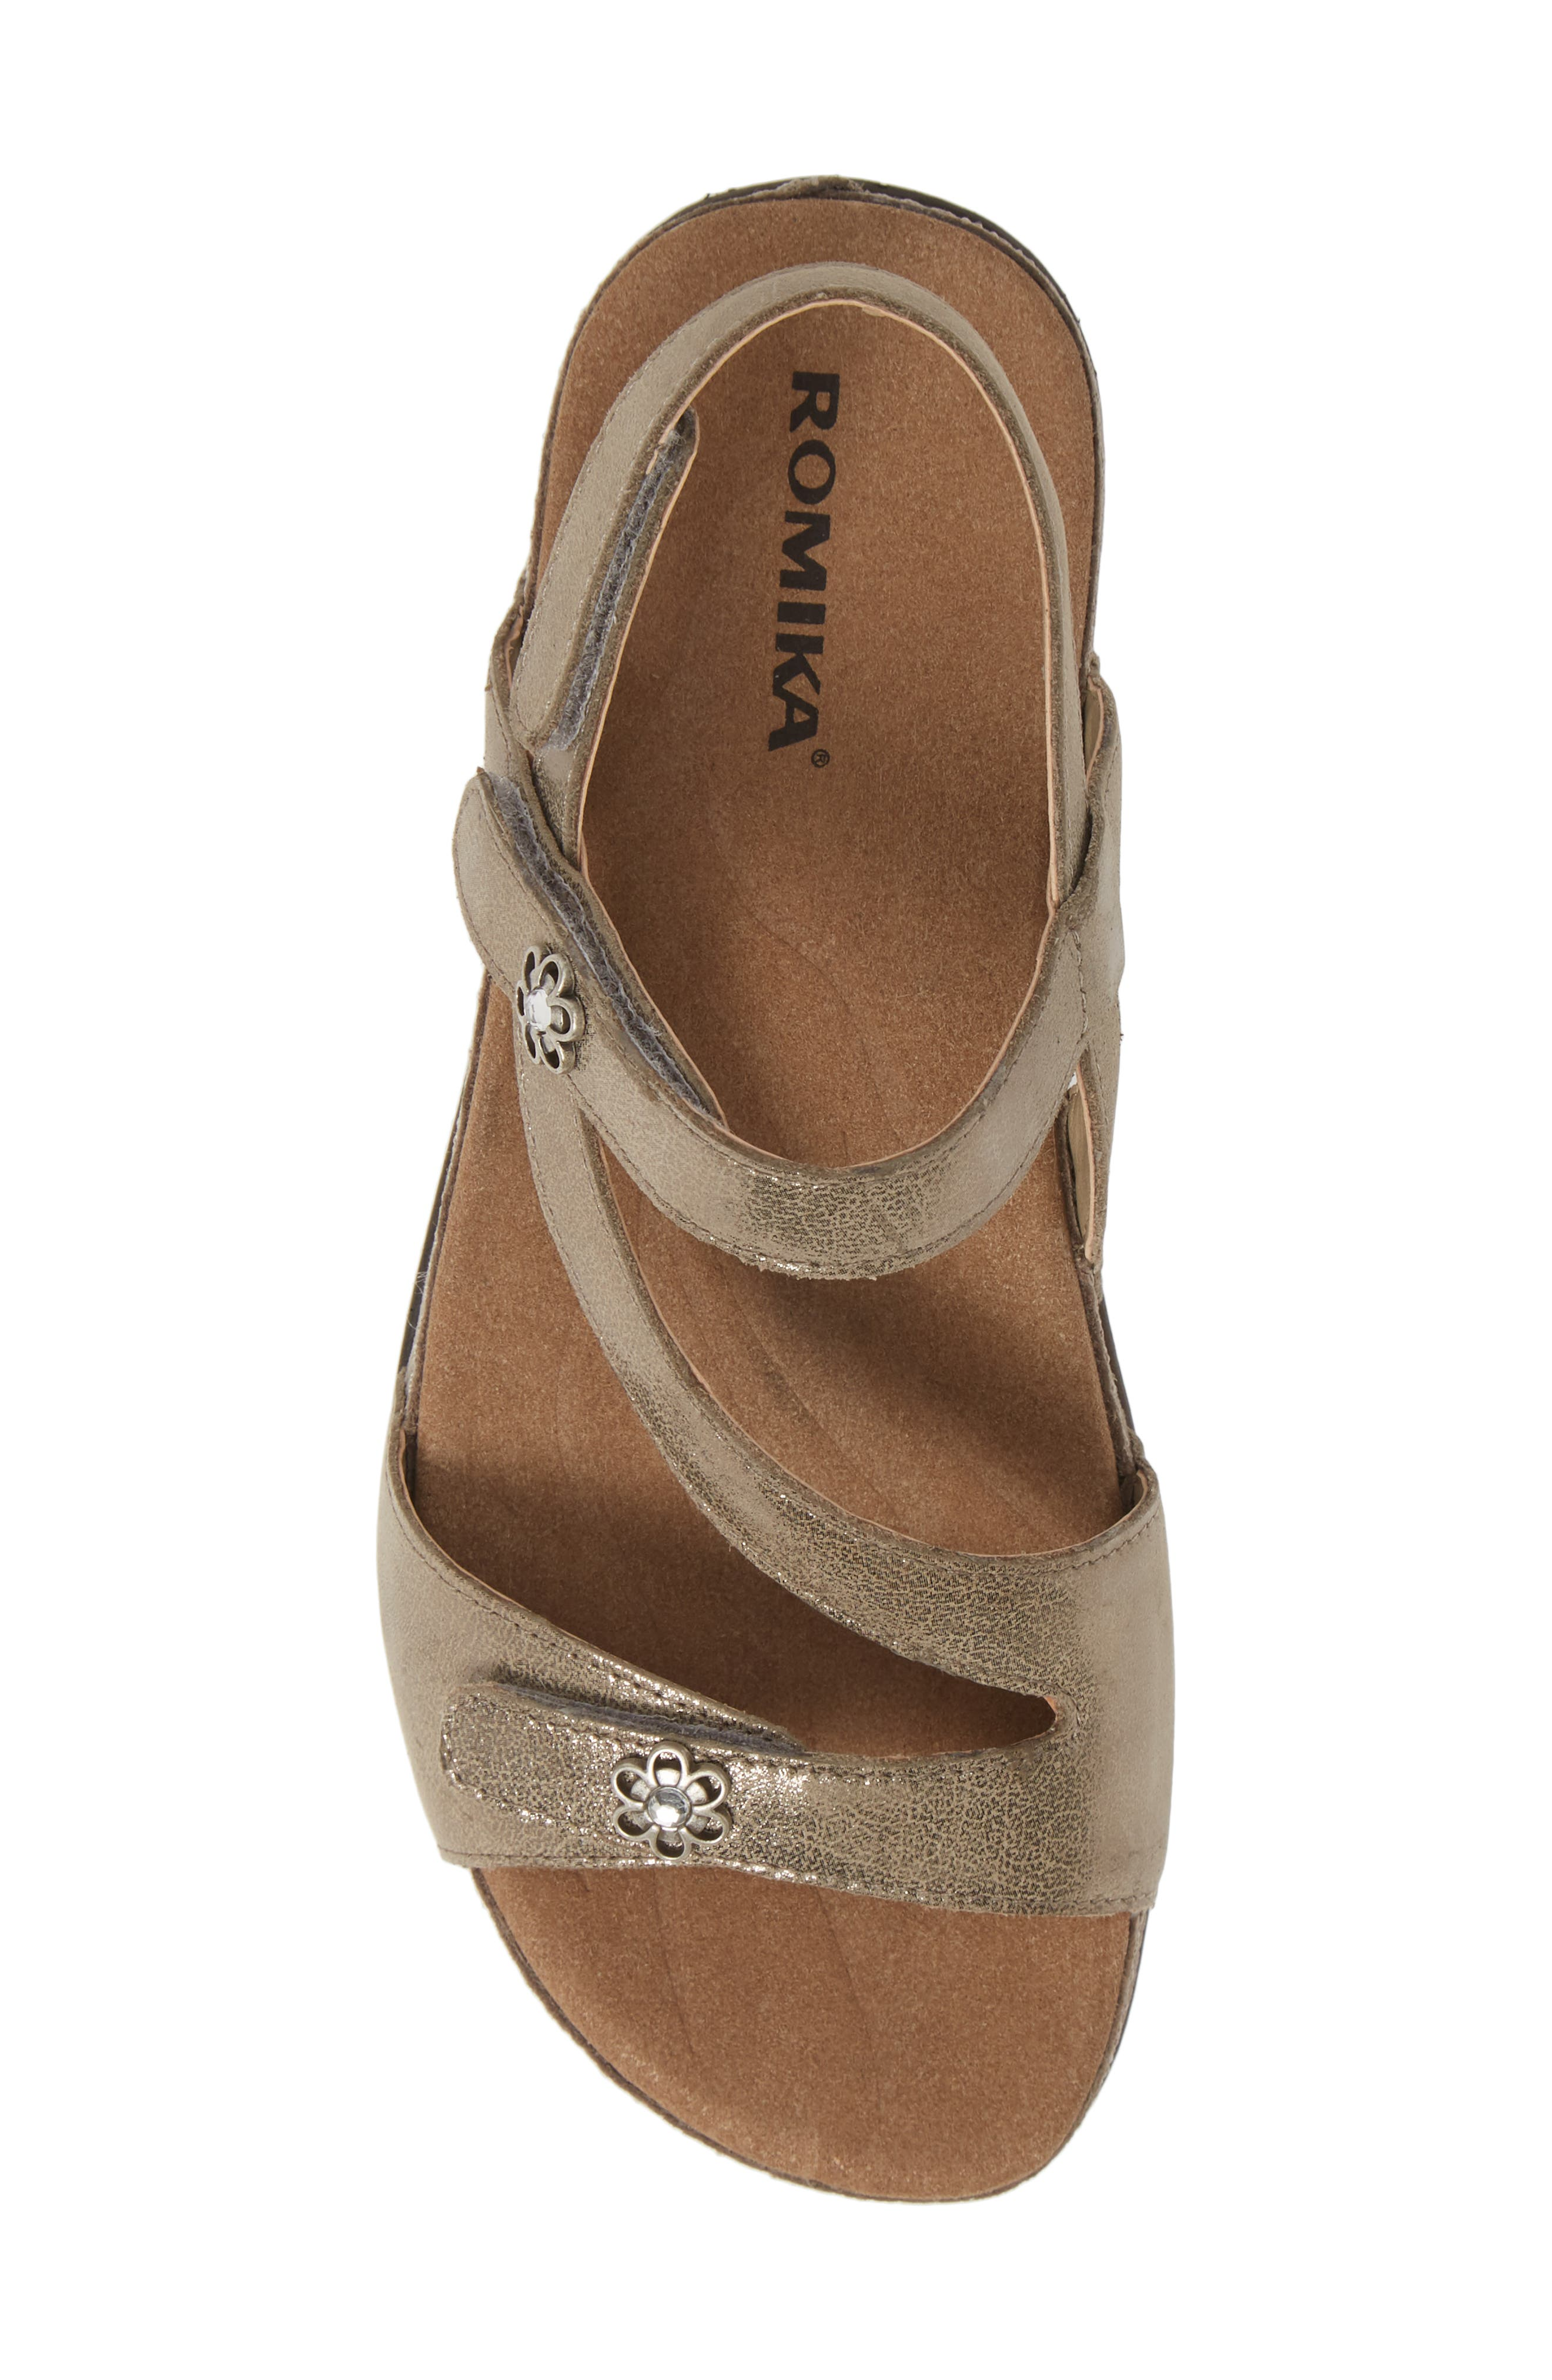 ROMIKA<SUP>®</SUP>, Fidschi 54 Sandal, Alternate thumbnail 5, color, BRONZE LEATHER